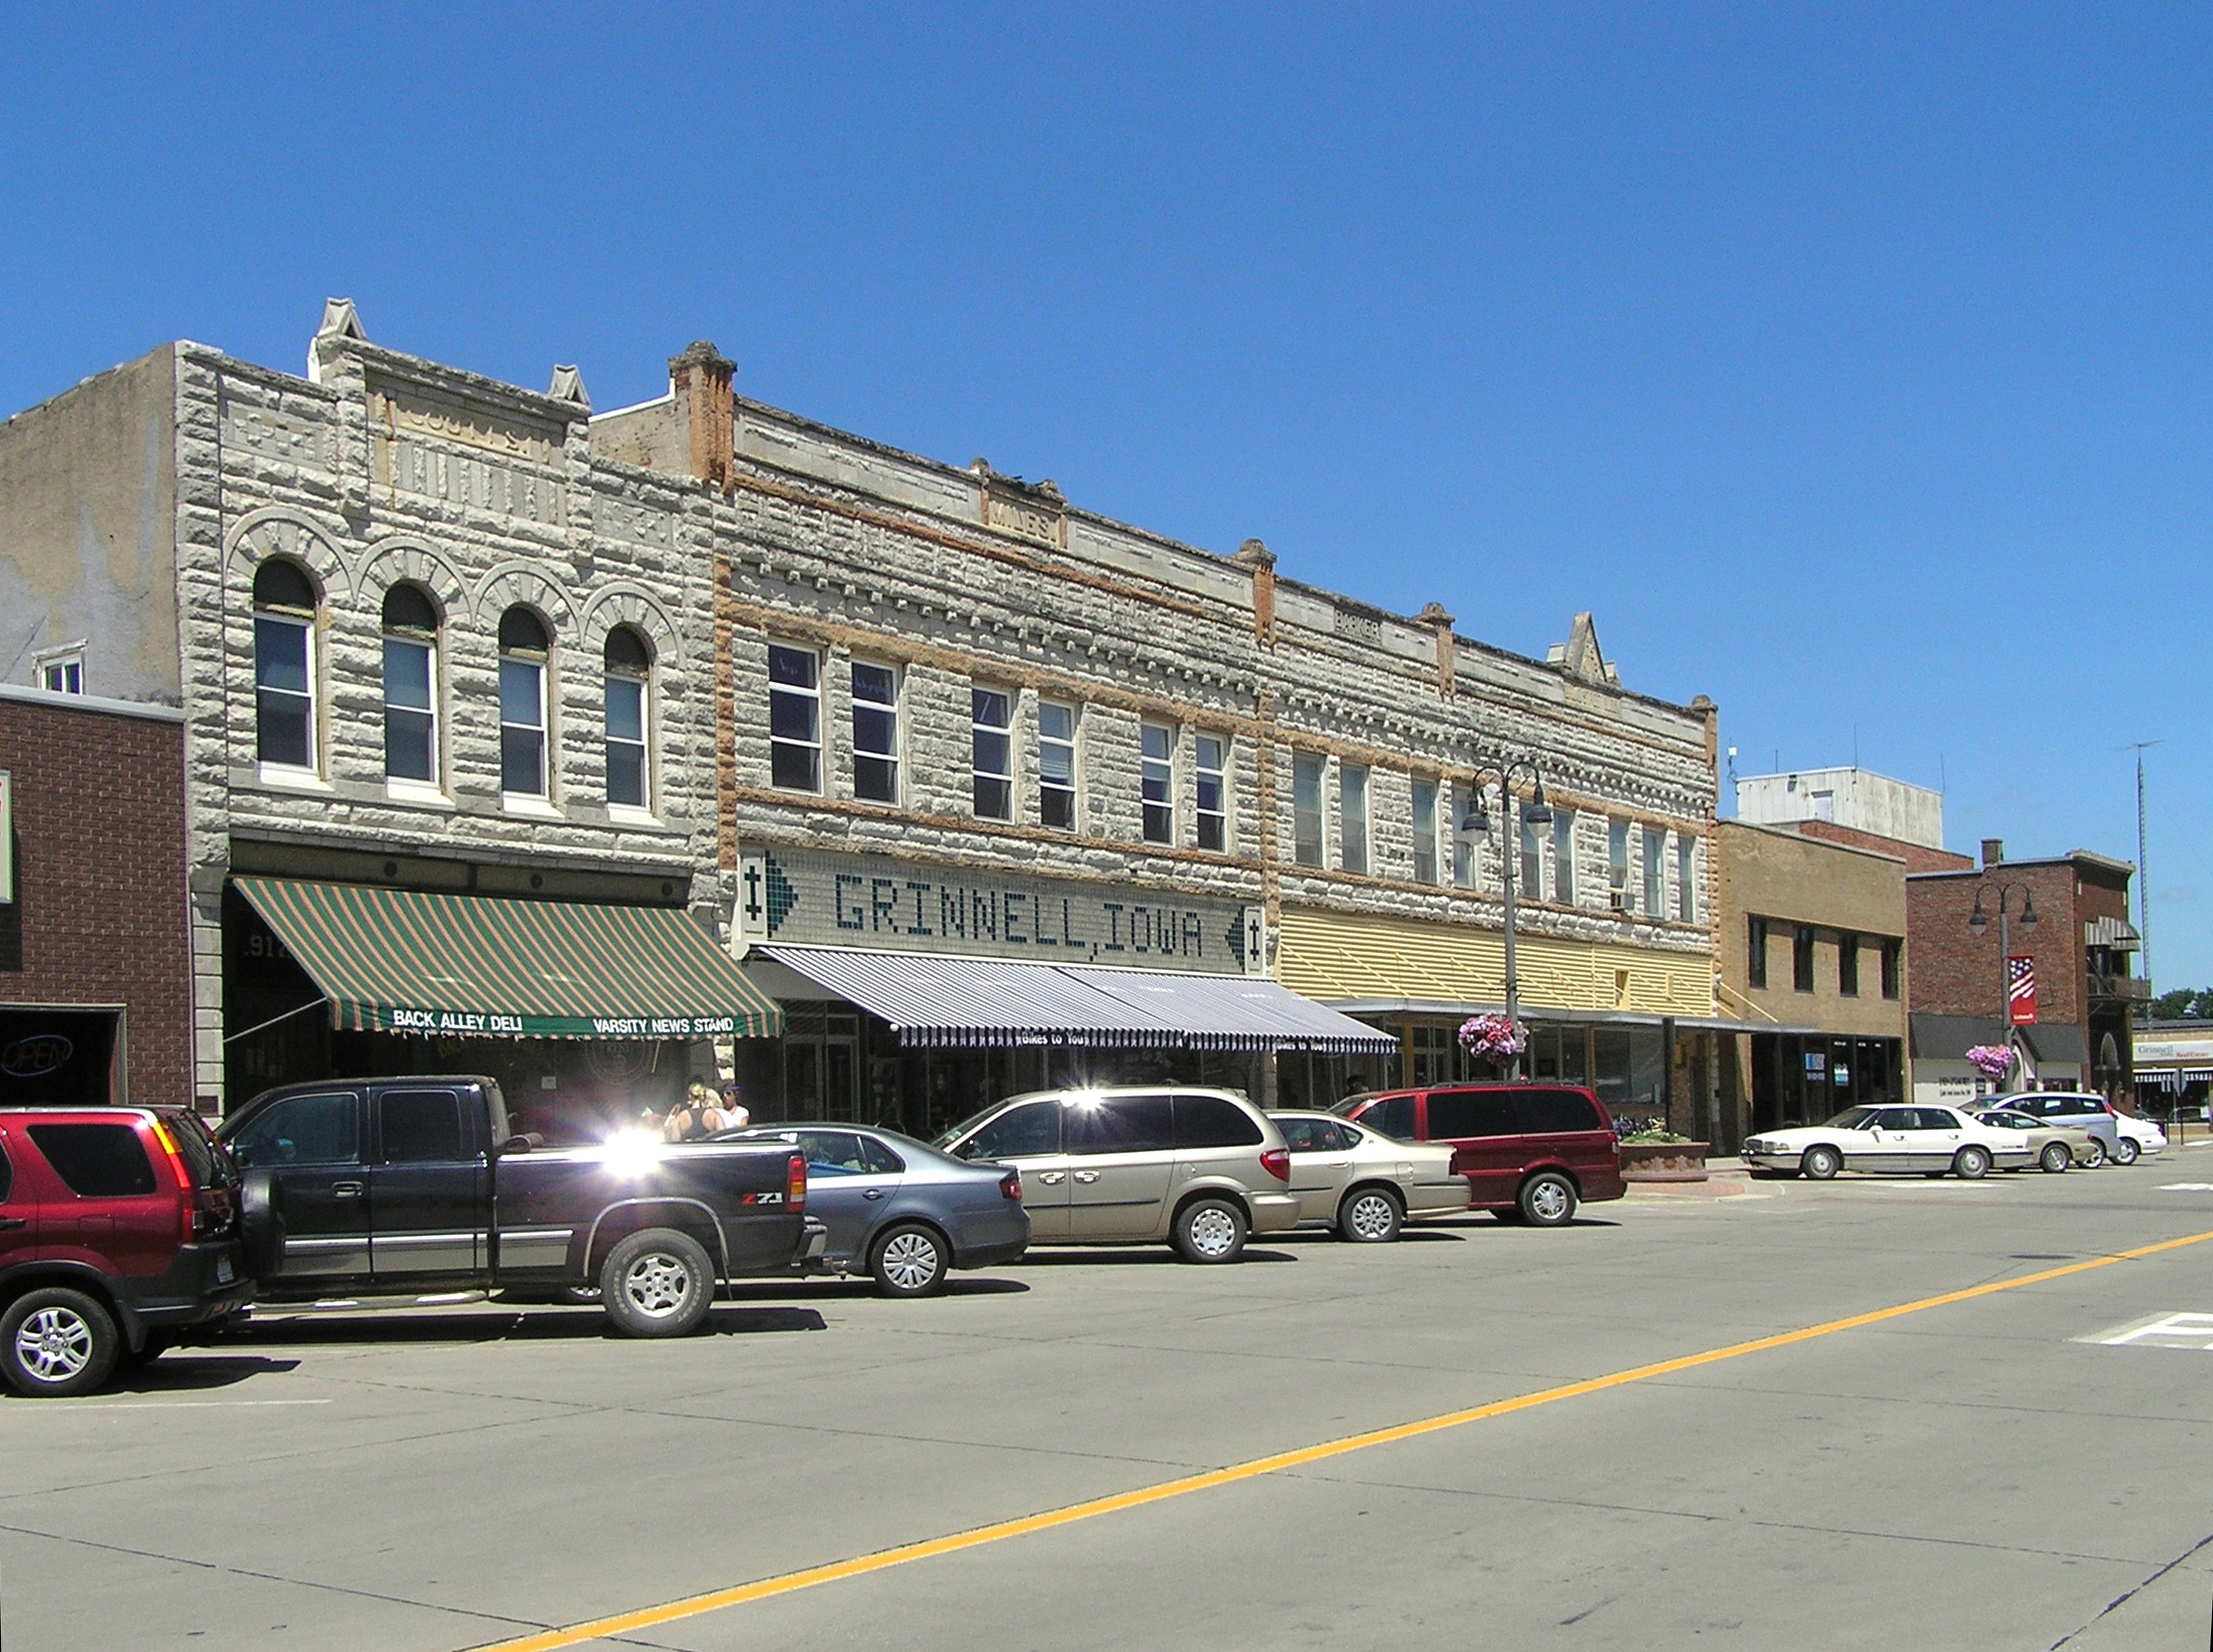 The streetscape of downtown Grinnell